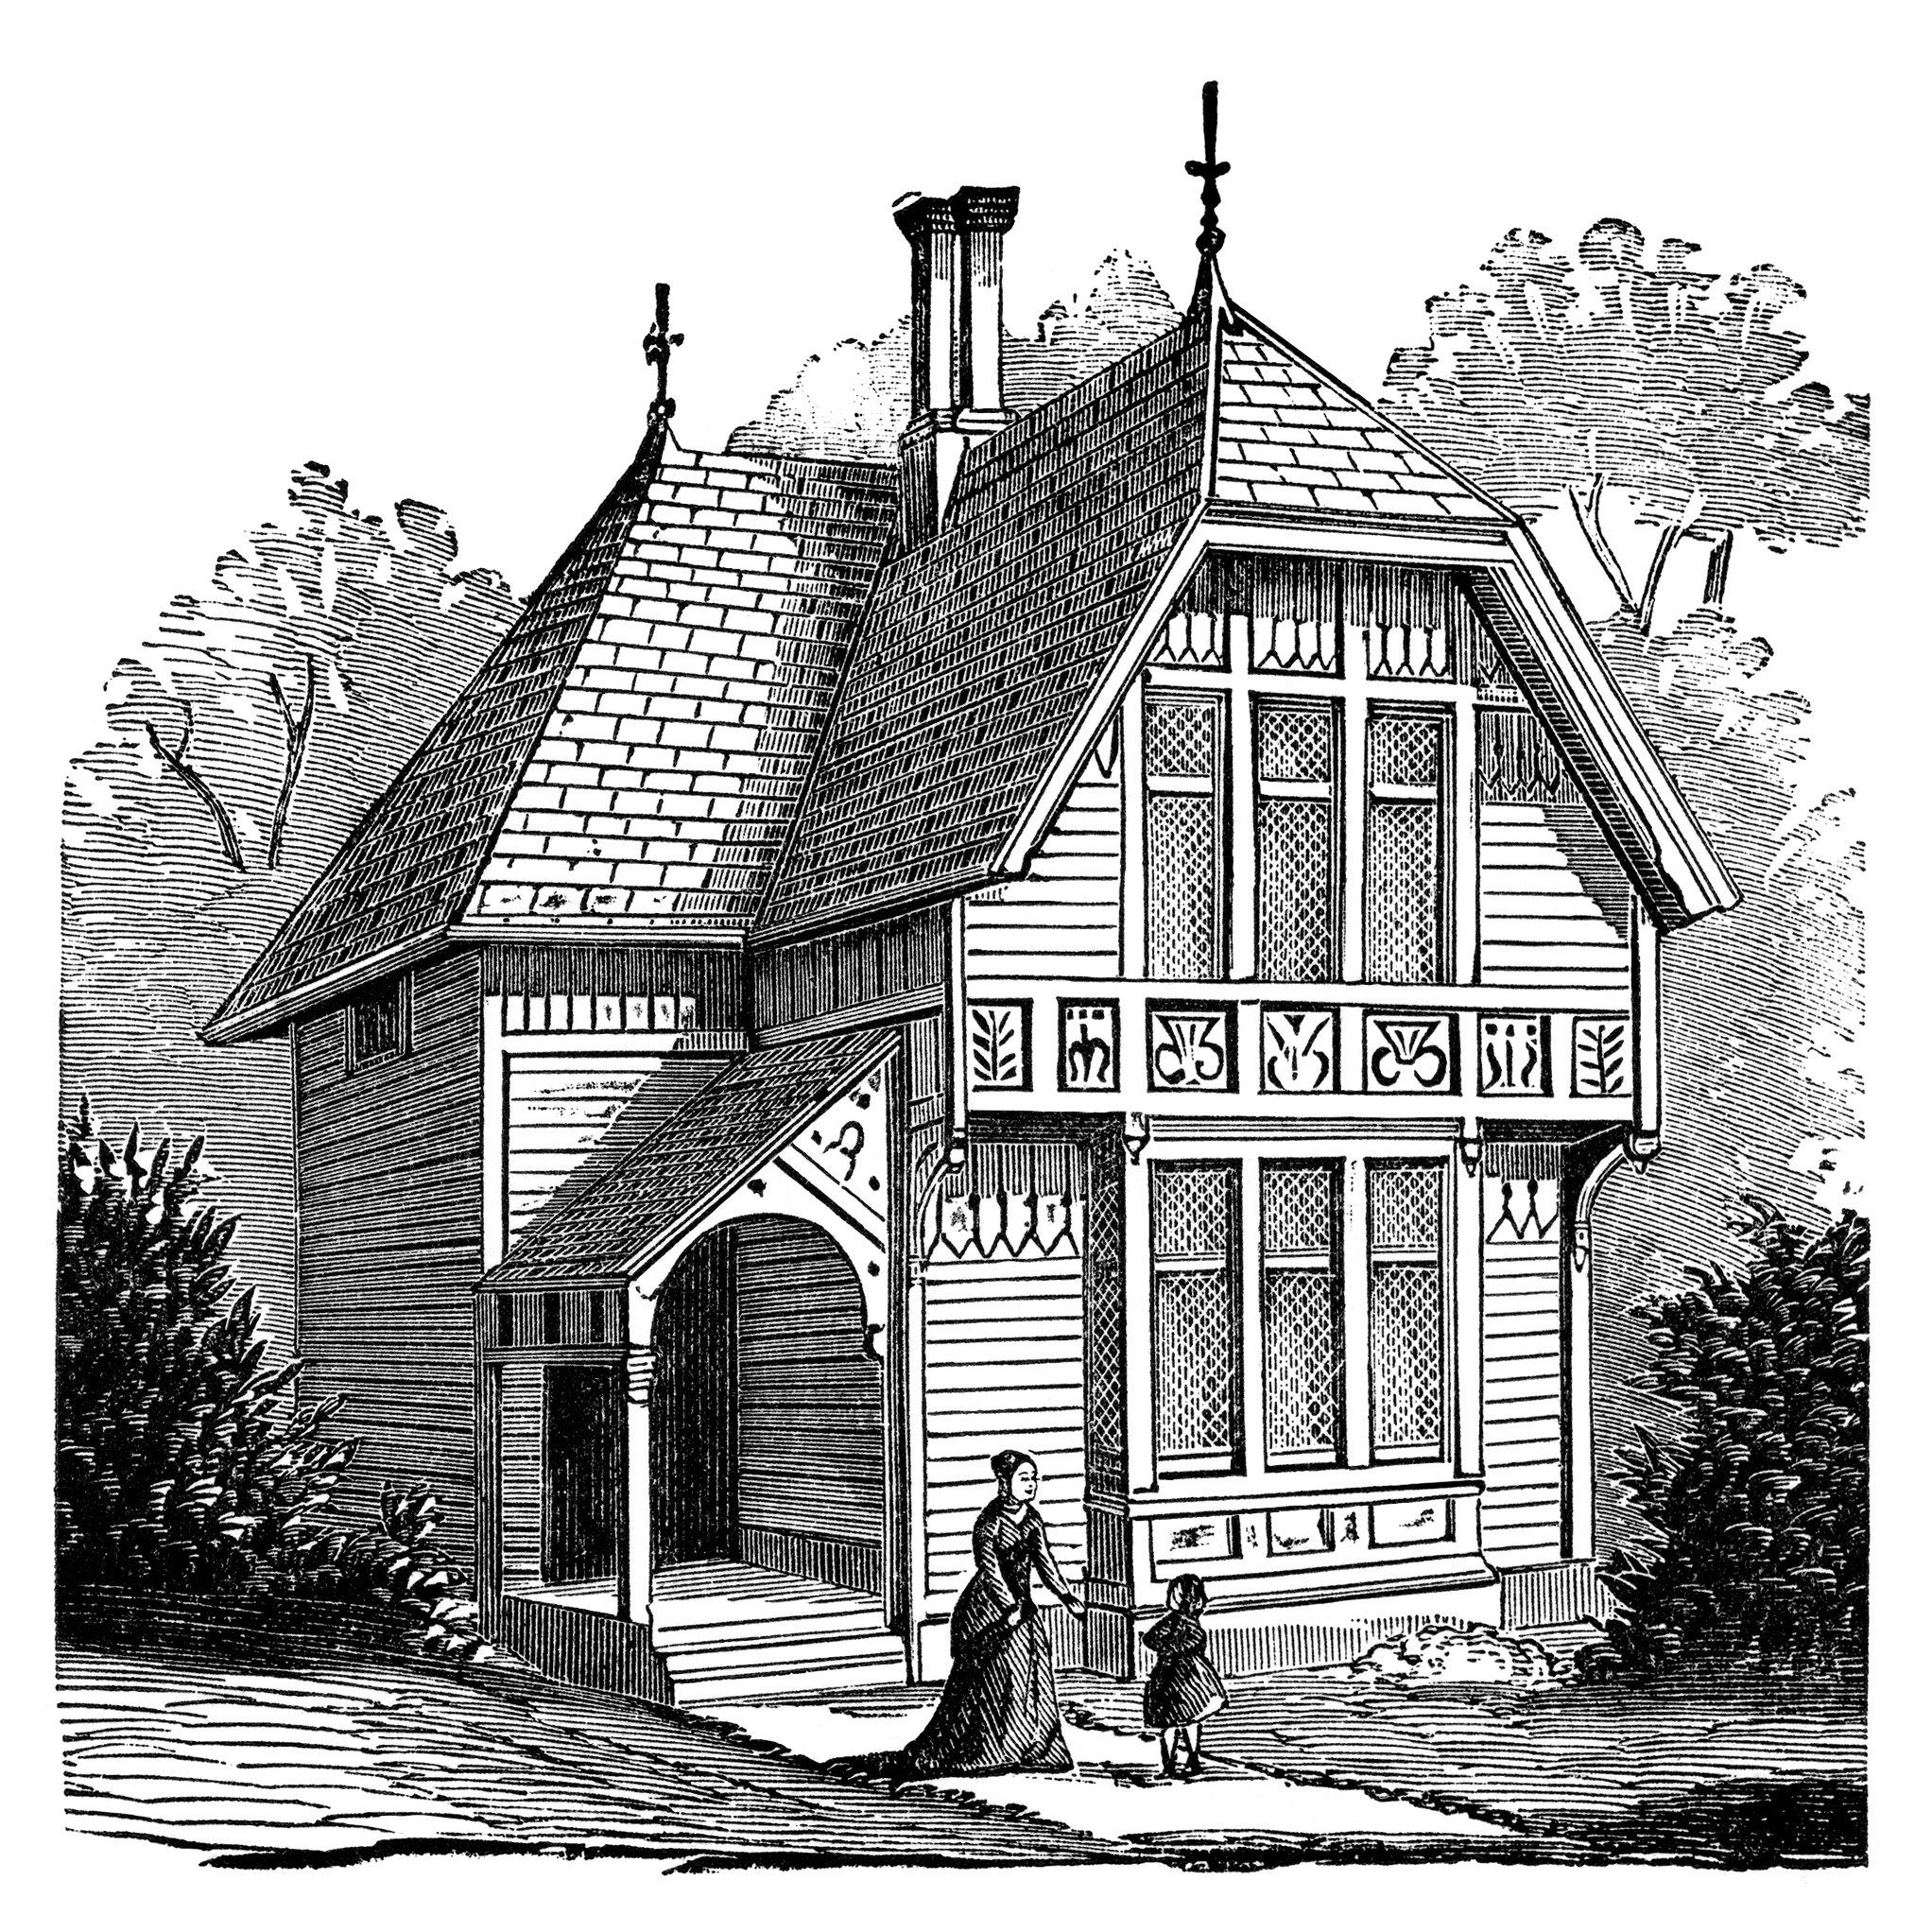 Farmhouse clipart old fashioned house. Antique illustration black and